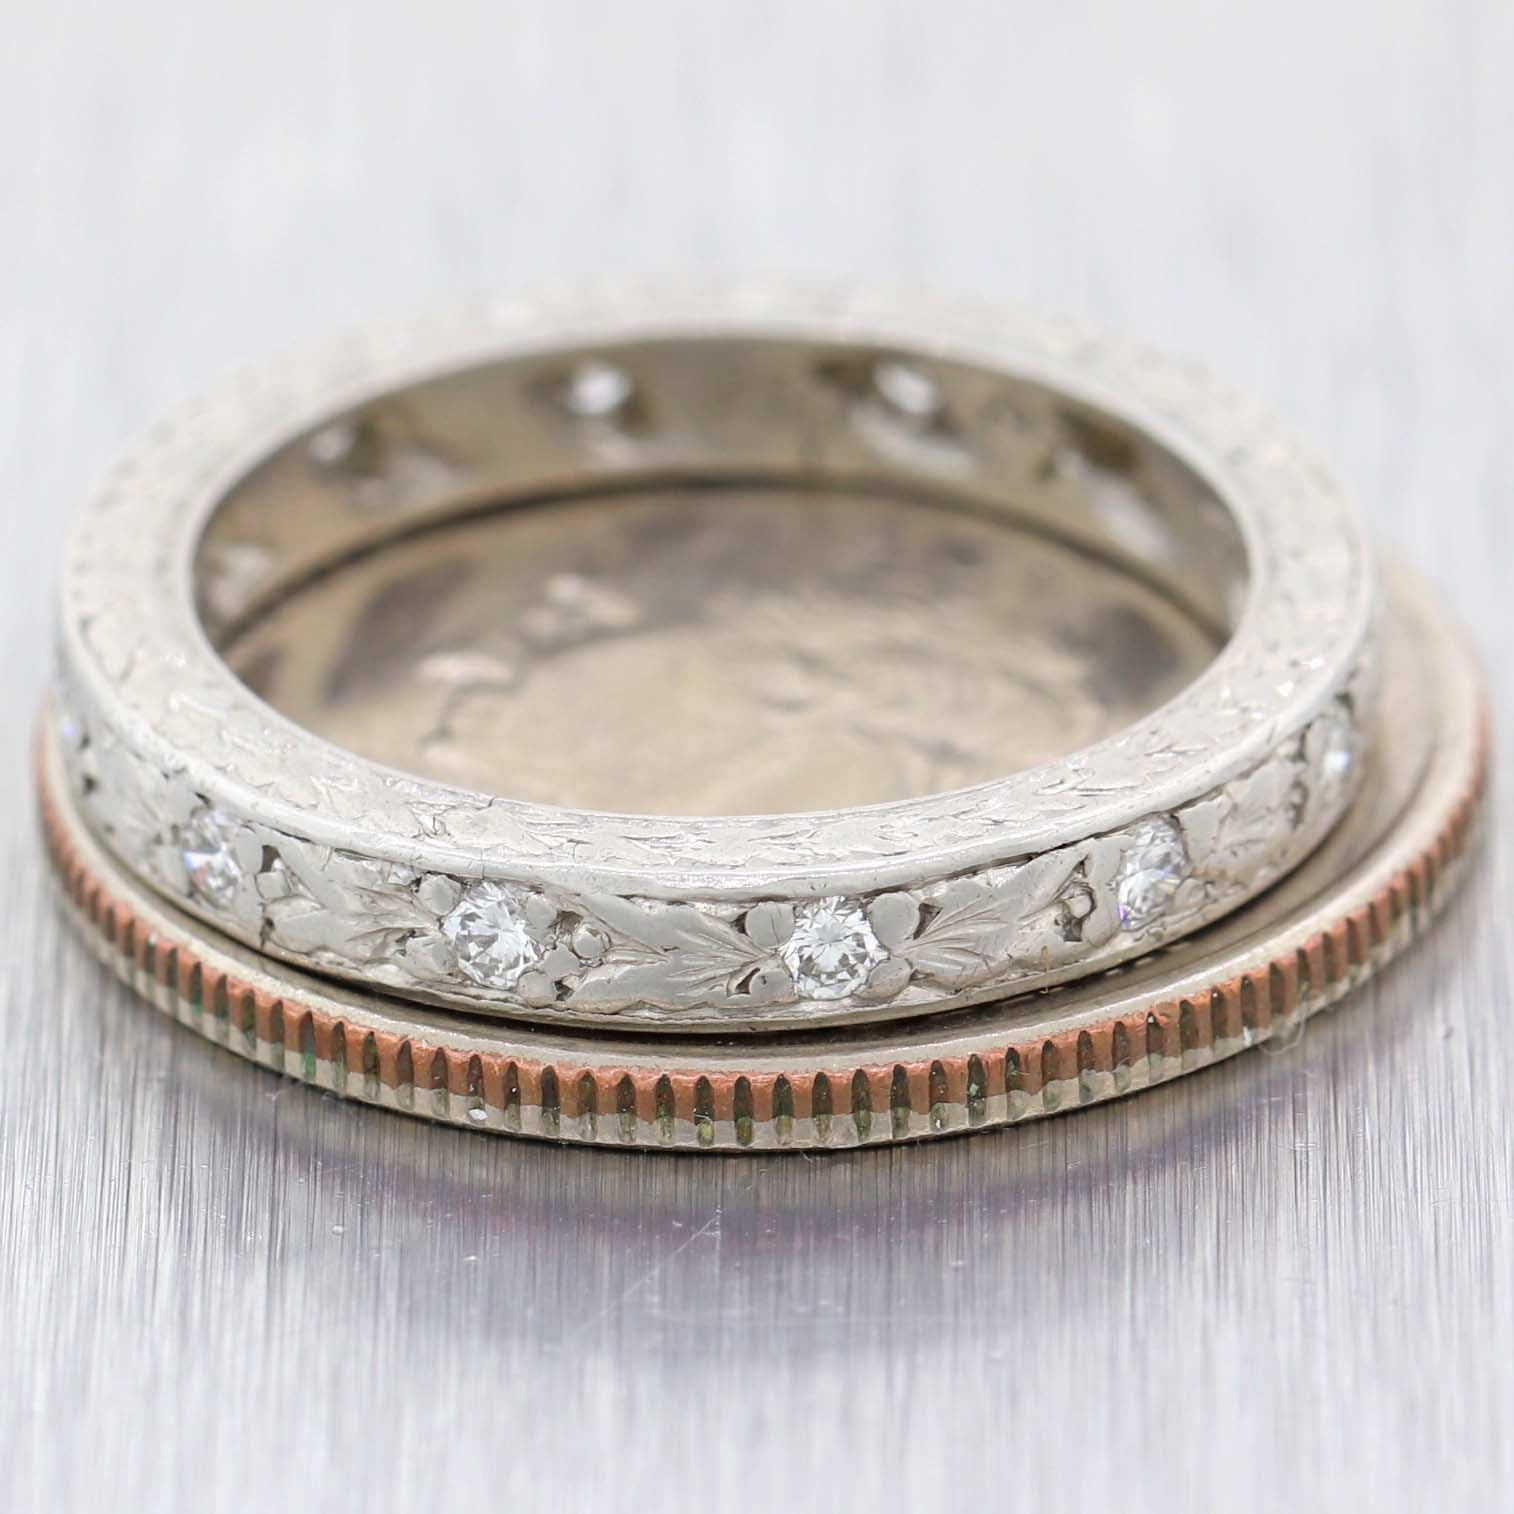 1920s Antique Art Deco Etched Platinum 2mm .25ct Diamond Wedding Band Ring A9